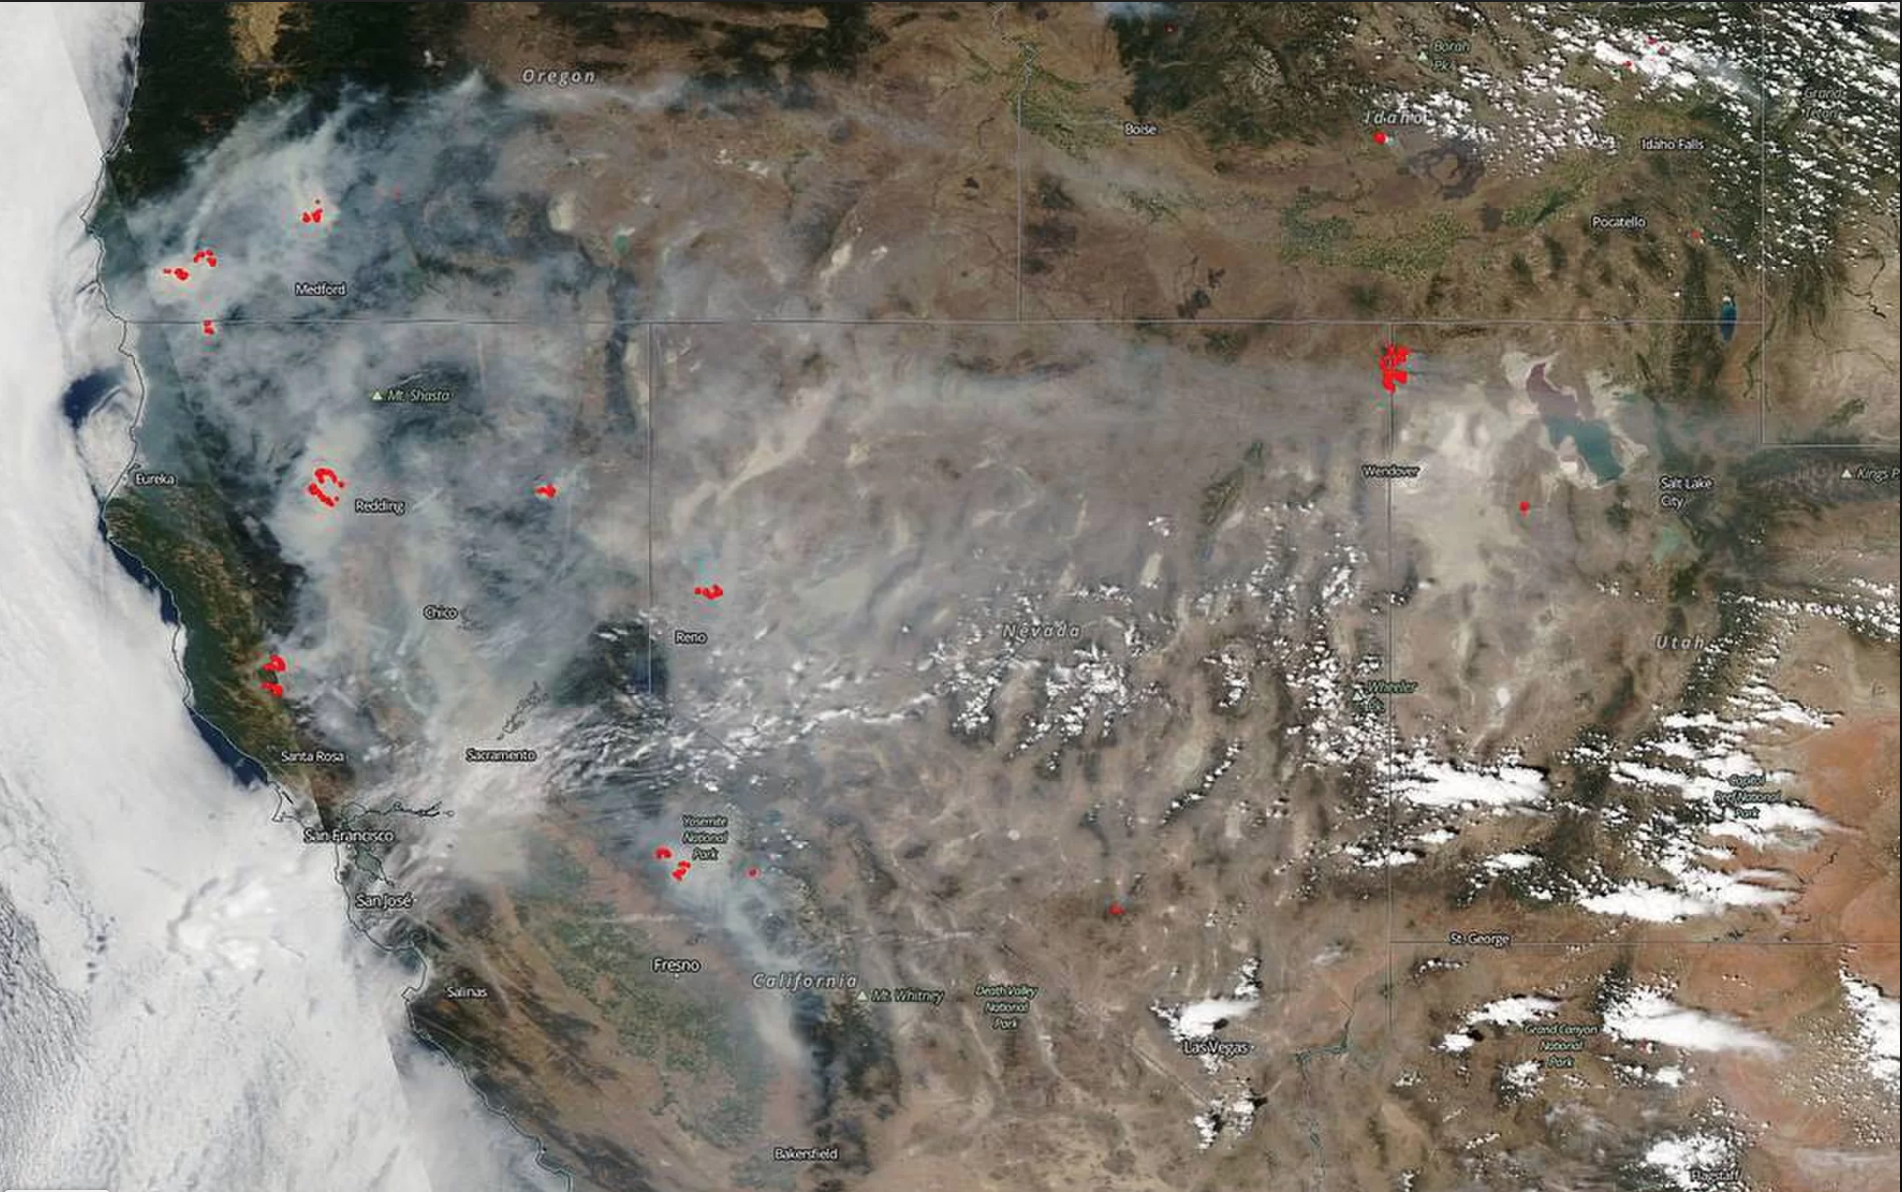 Wildfire smoke blankets California Credit: NASA/Goddard Space Flight Center Earth Science Data and Information System (ESDIS) project